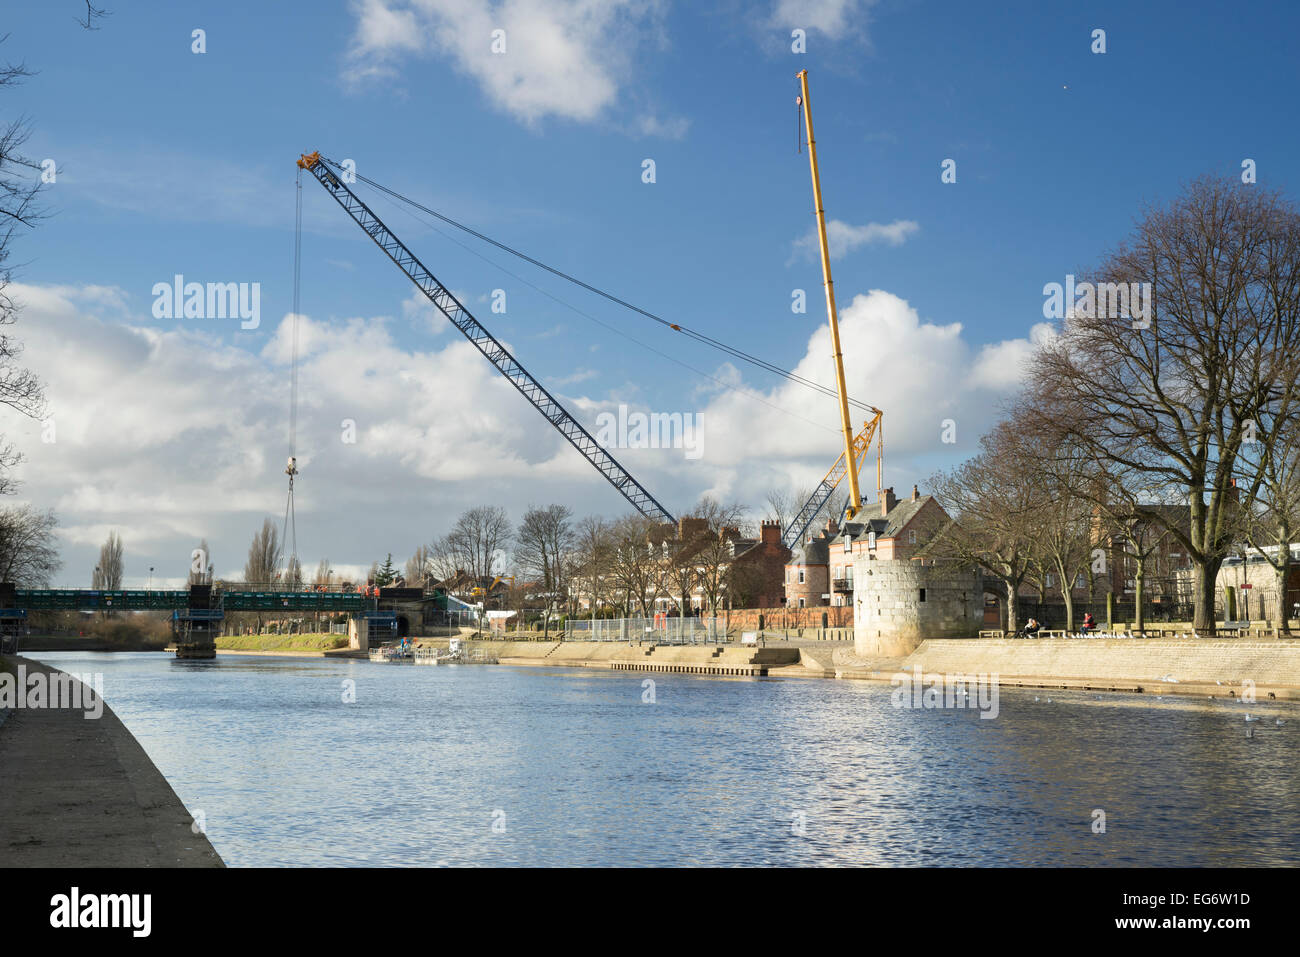 The Scarborough Railway Bridge over the River Ouse in York being replaced in February 2015. - Stock Image